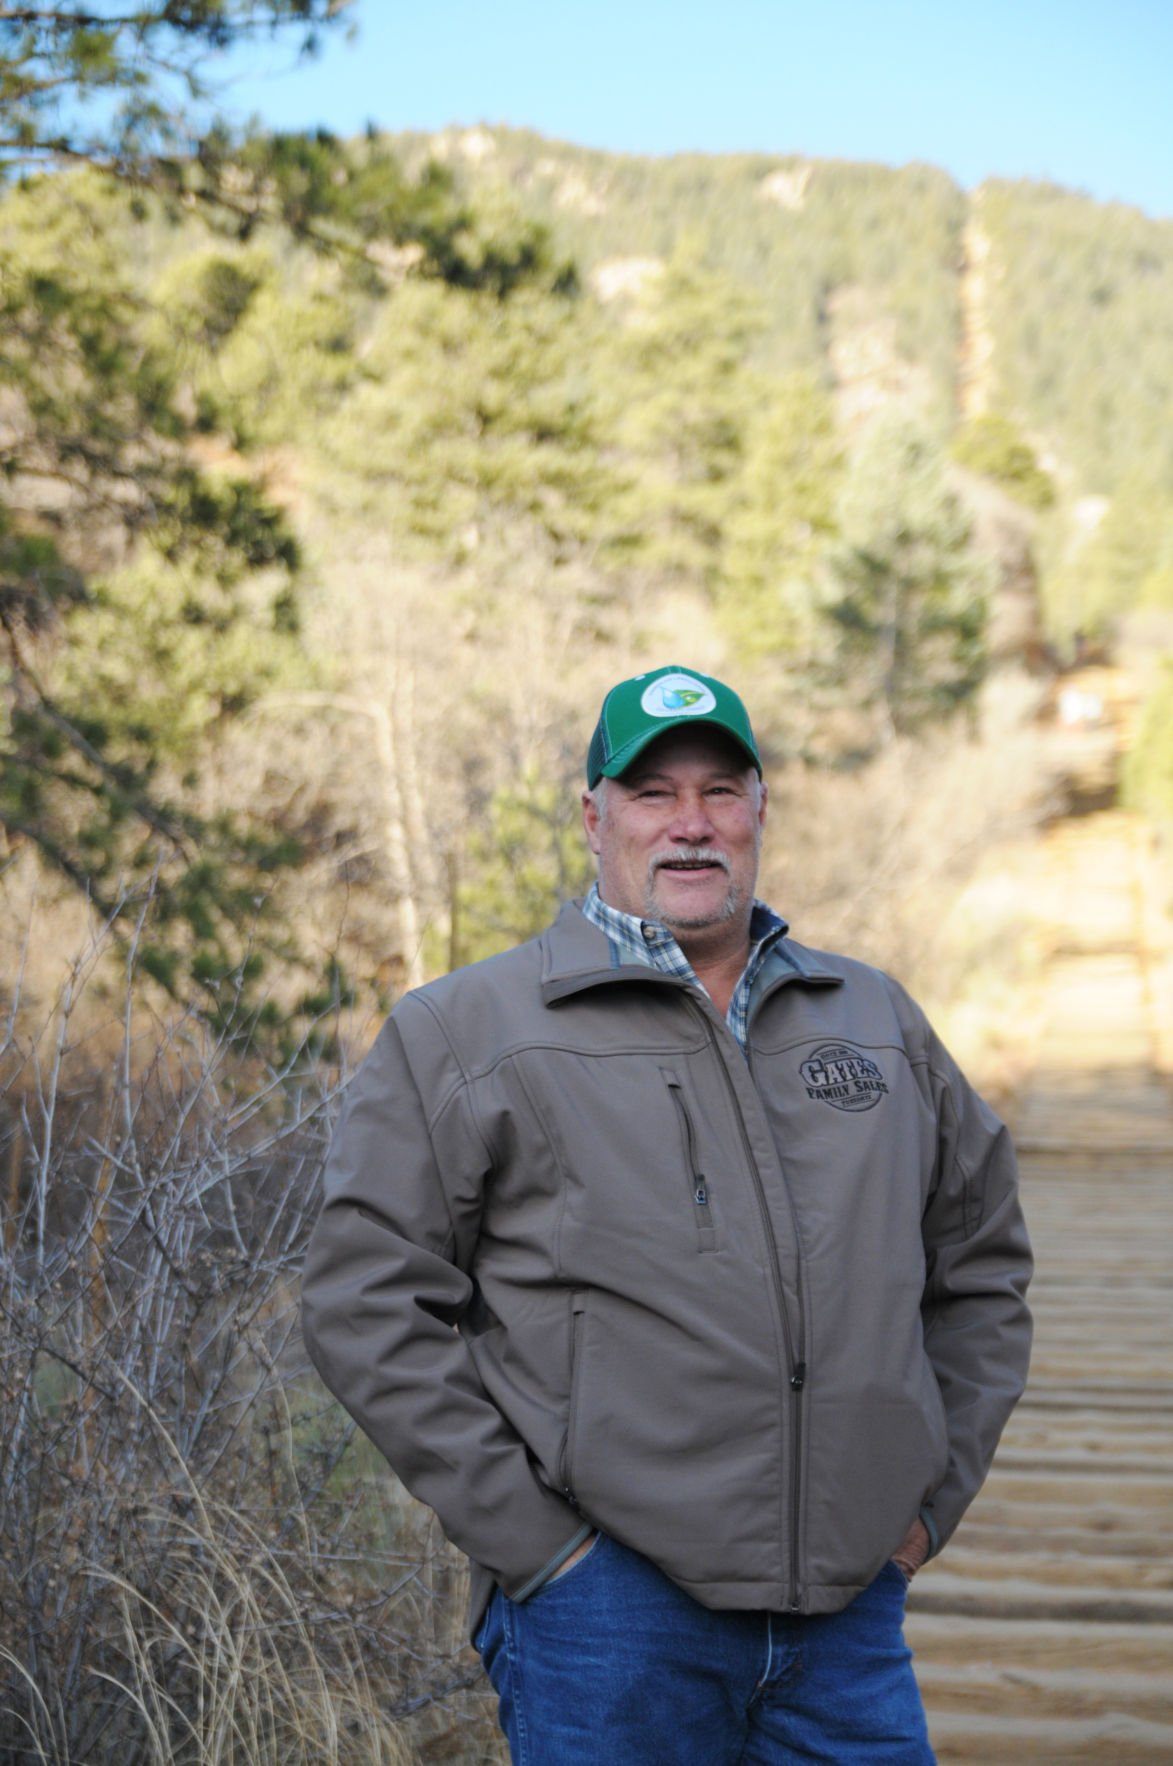 Incline was a job like no other for Colorado Springs landscaping company